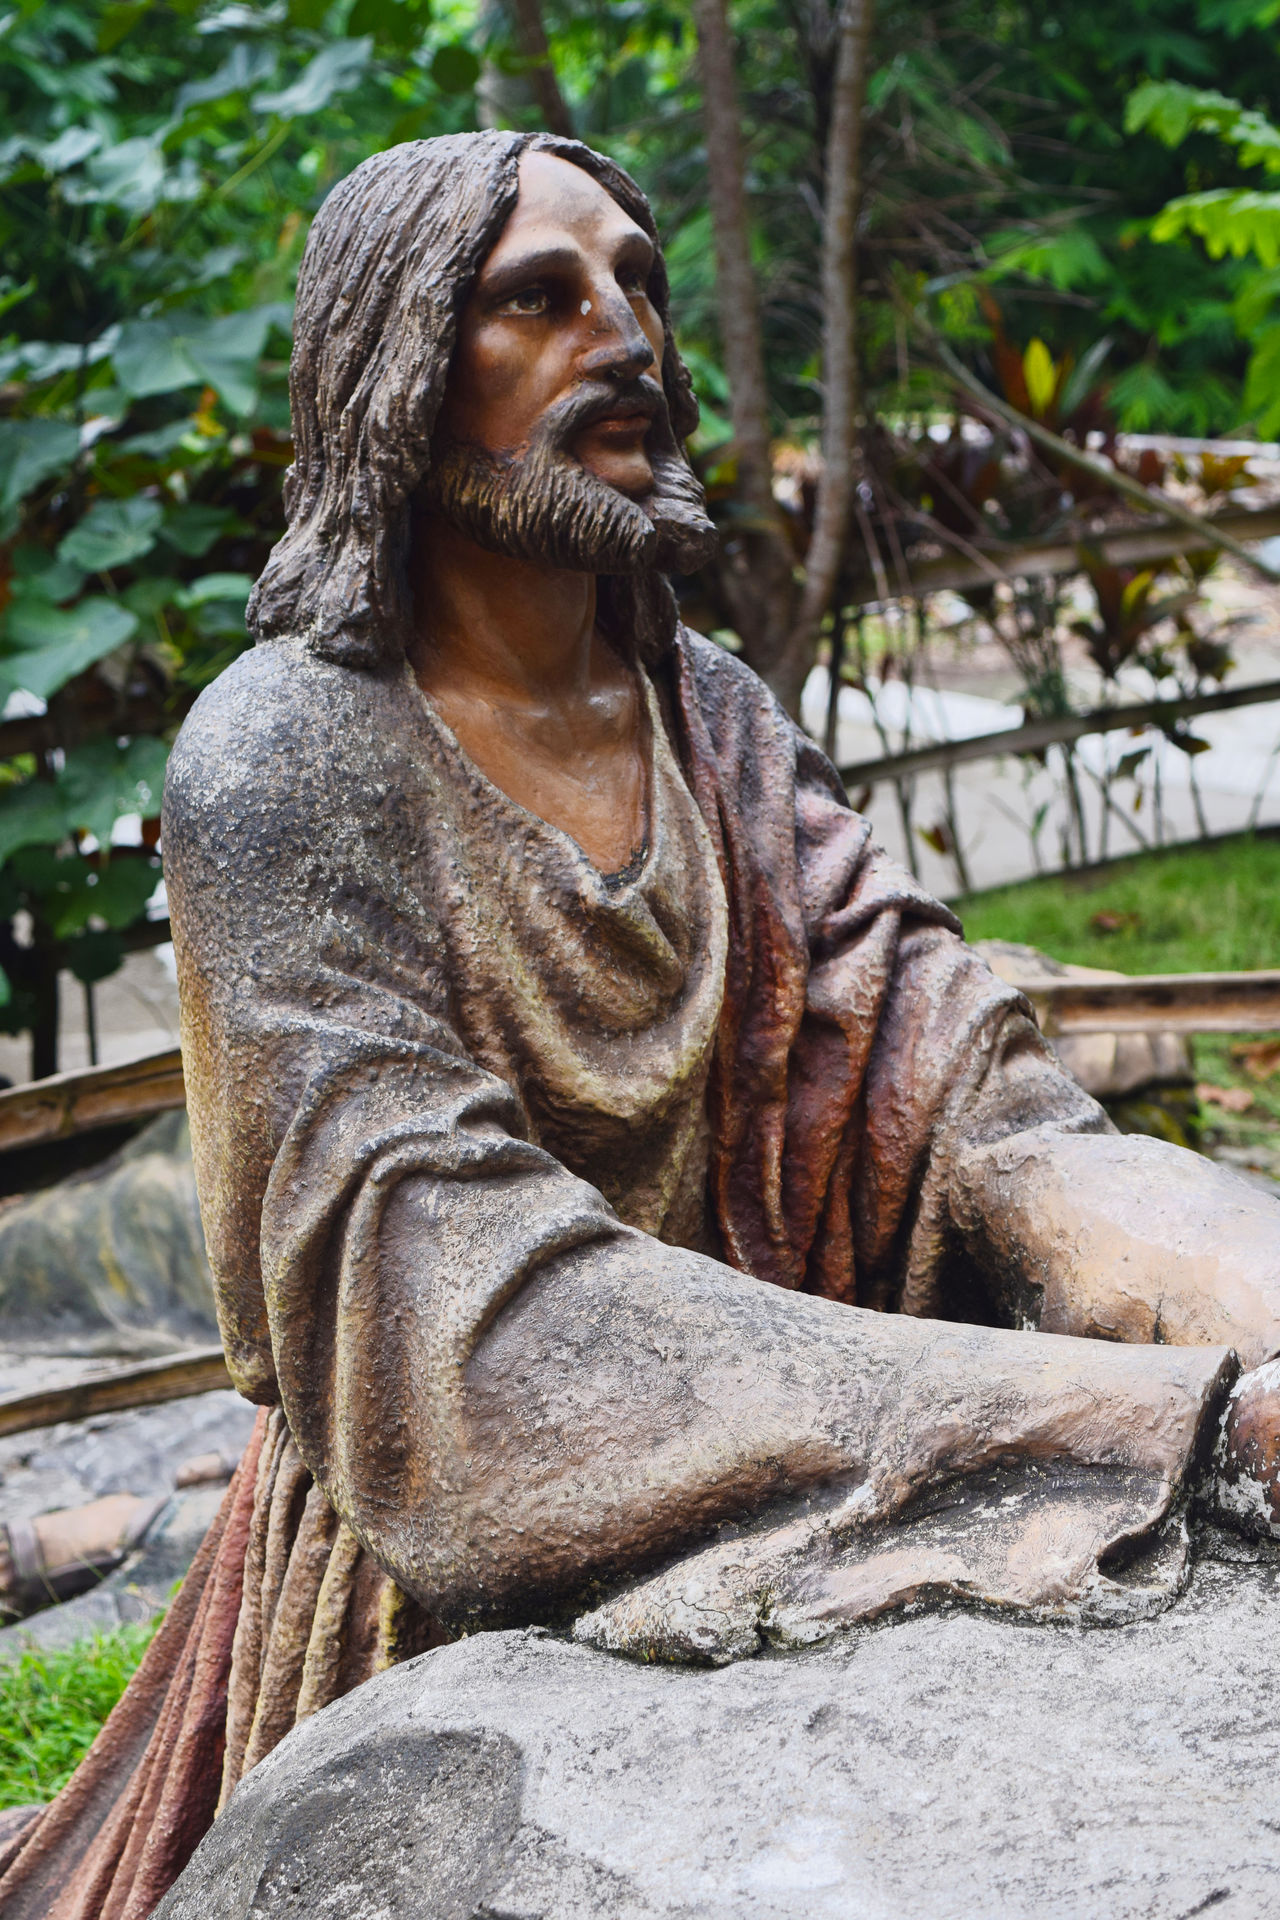 One of the statues that is used to represent one station in the Station Of The Cross in Kawa Kawa Hills, Ligao City, Philippines. Albay Day Devotion Jesus Jesus Christ Kawa Kawa Hill, Ligao City Nature Religious  Religious Art Religious Beliefs Religious Photography Station Of The Cross Statue Tree EyeEmNewHere